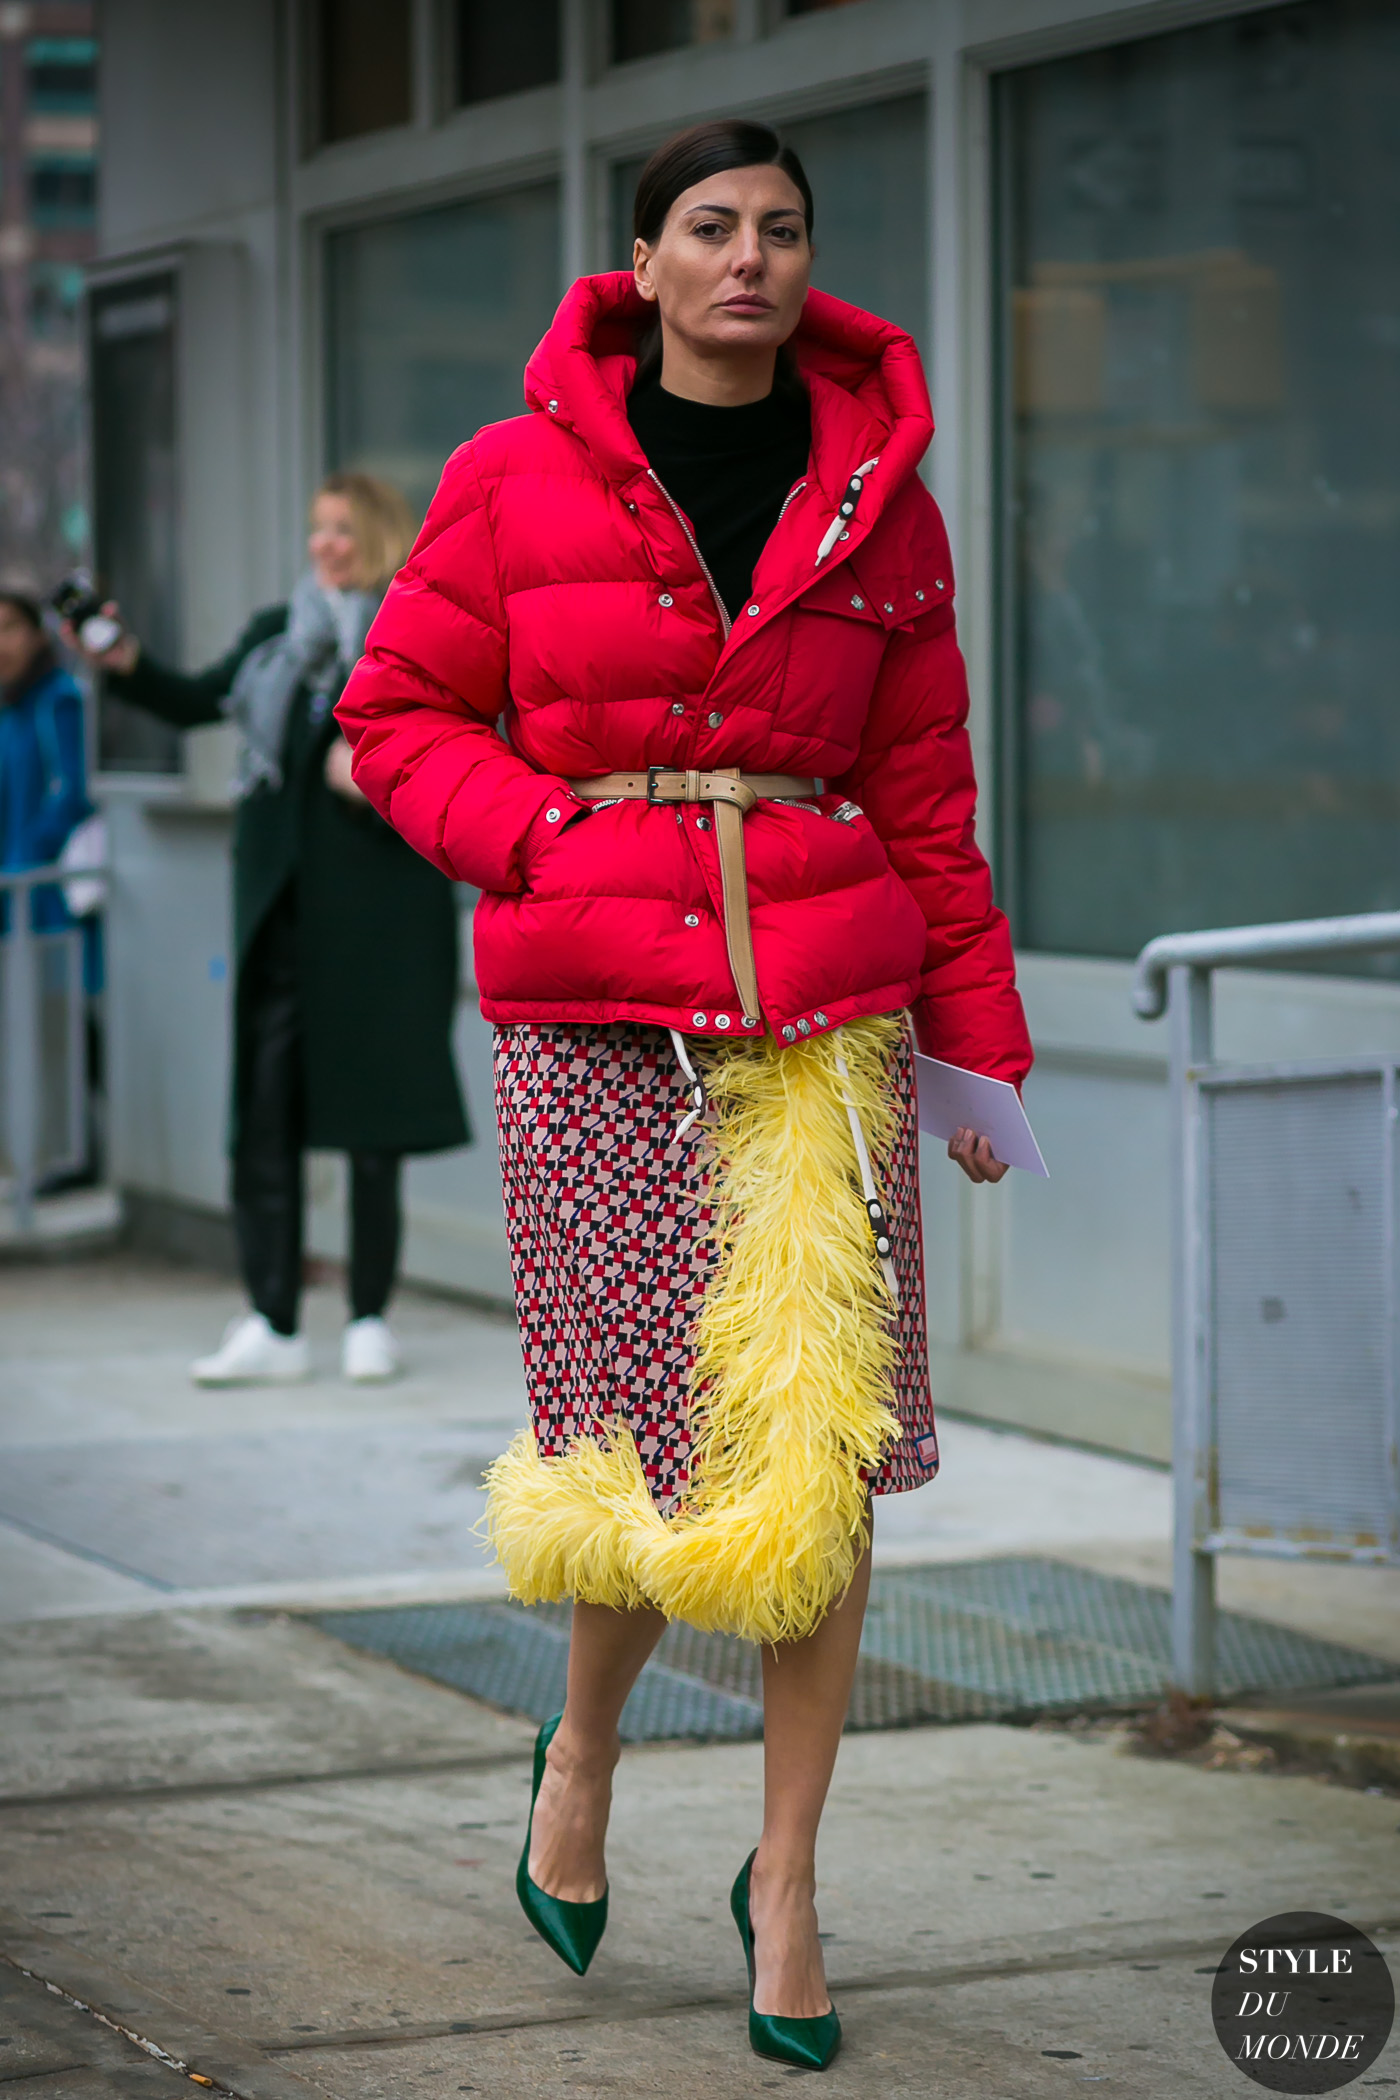 Giovanna-Battaglia-Engelbert-by-STYLEDUMONDE-Street-Style-Fashion-Photography0E2A9203